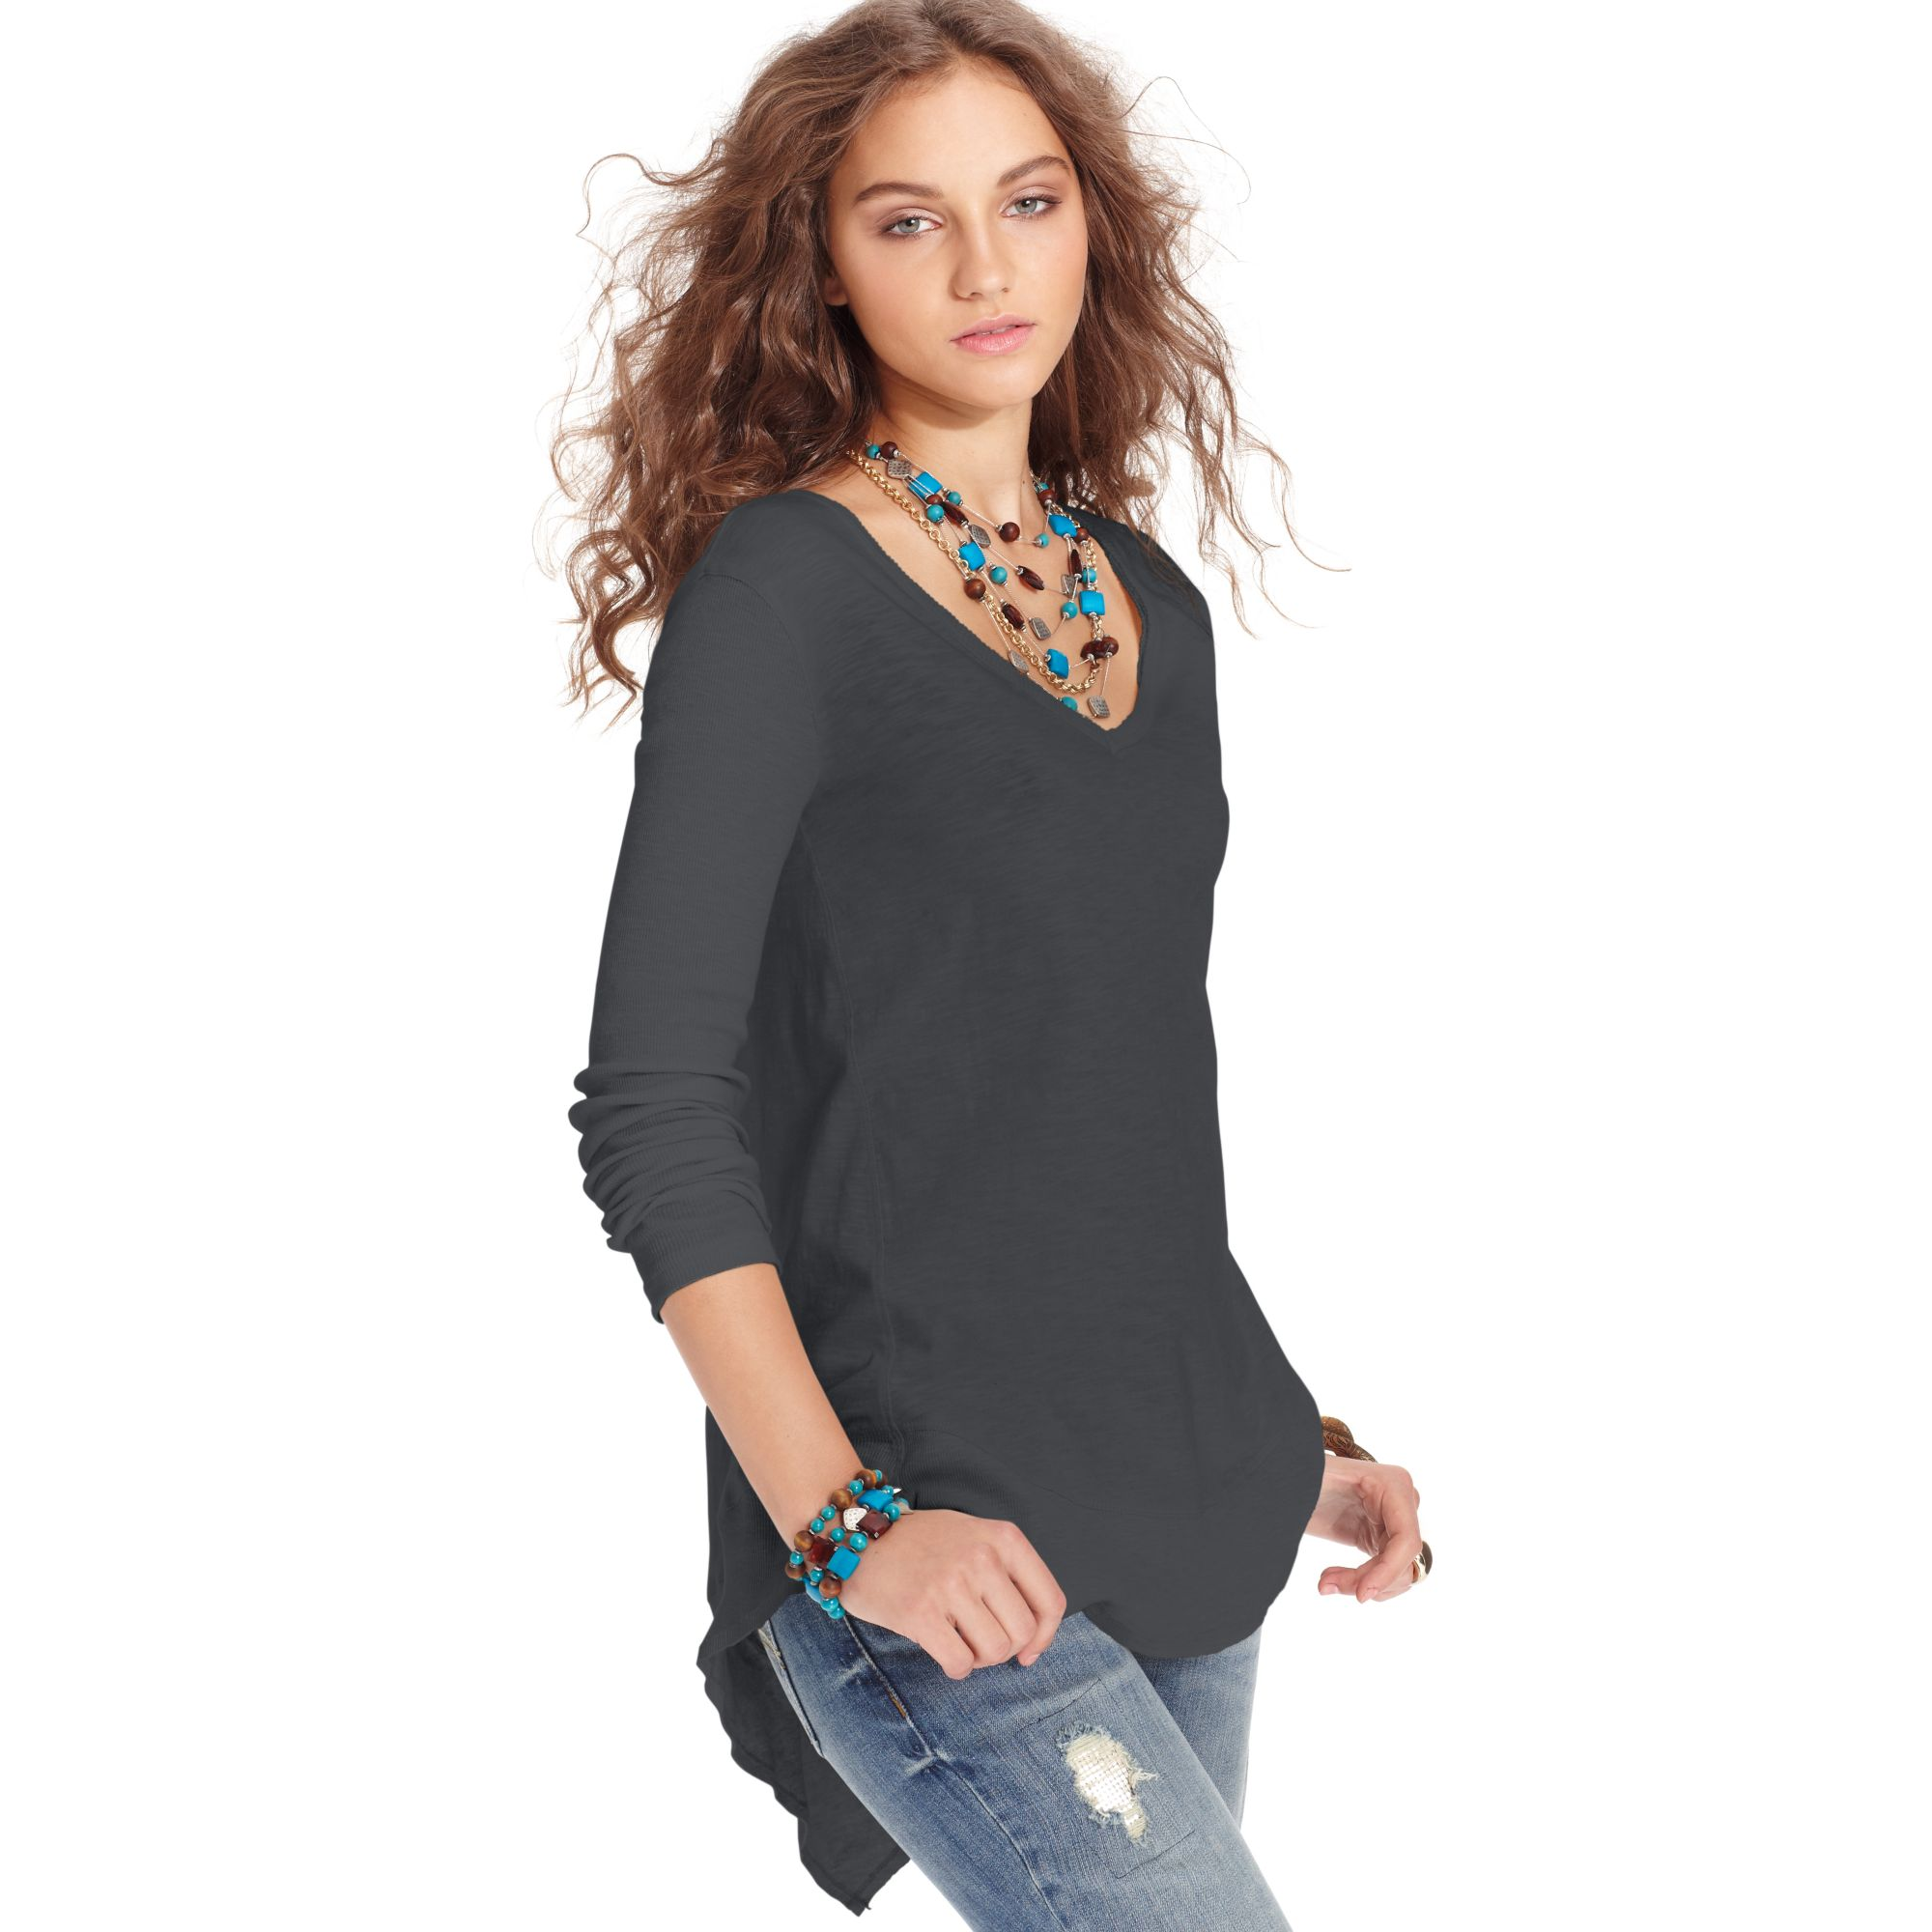 Free People Long Sleeve V-Neck High Low Top In Black